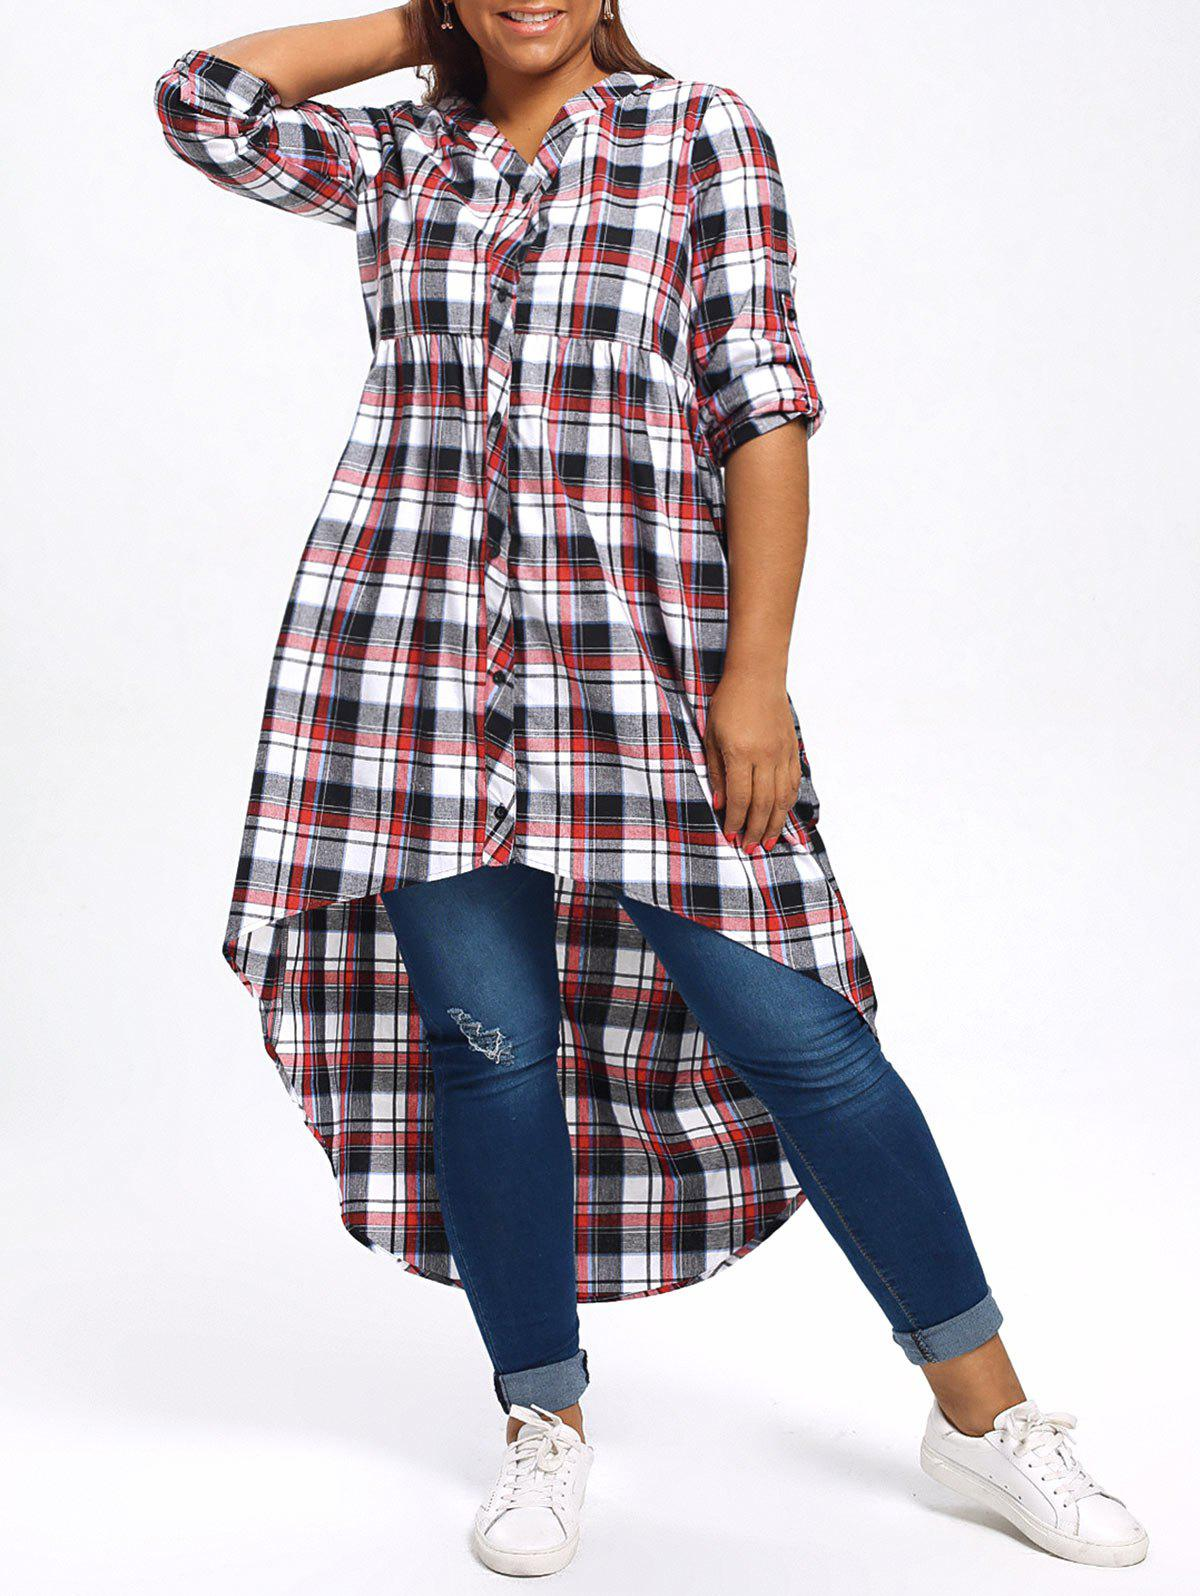 High Low Plus Size Plaid ShirtWOMEN<br><br>Size: 5XL; Color: COLORMIX; Material: Polyester; Shirt Length: Long; Sleeve Length: Full; Collar: V-Neck; Style: Casual; Season: Fall,Spring; Pattern Type: Plaid; Weight: 0.4300kg; Package Contents: 1 x Shirt;